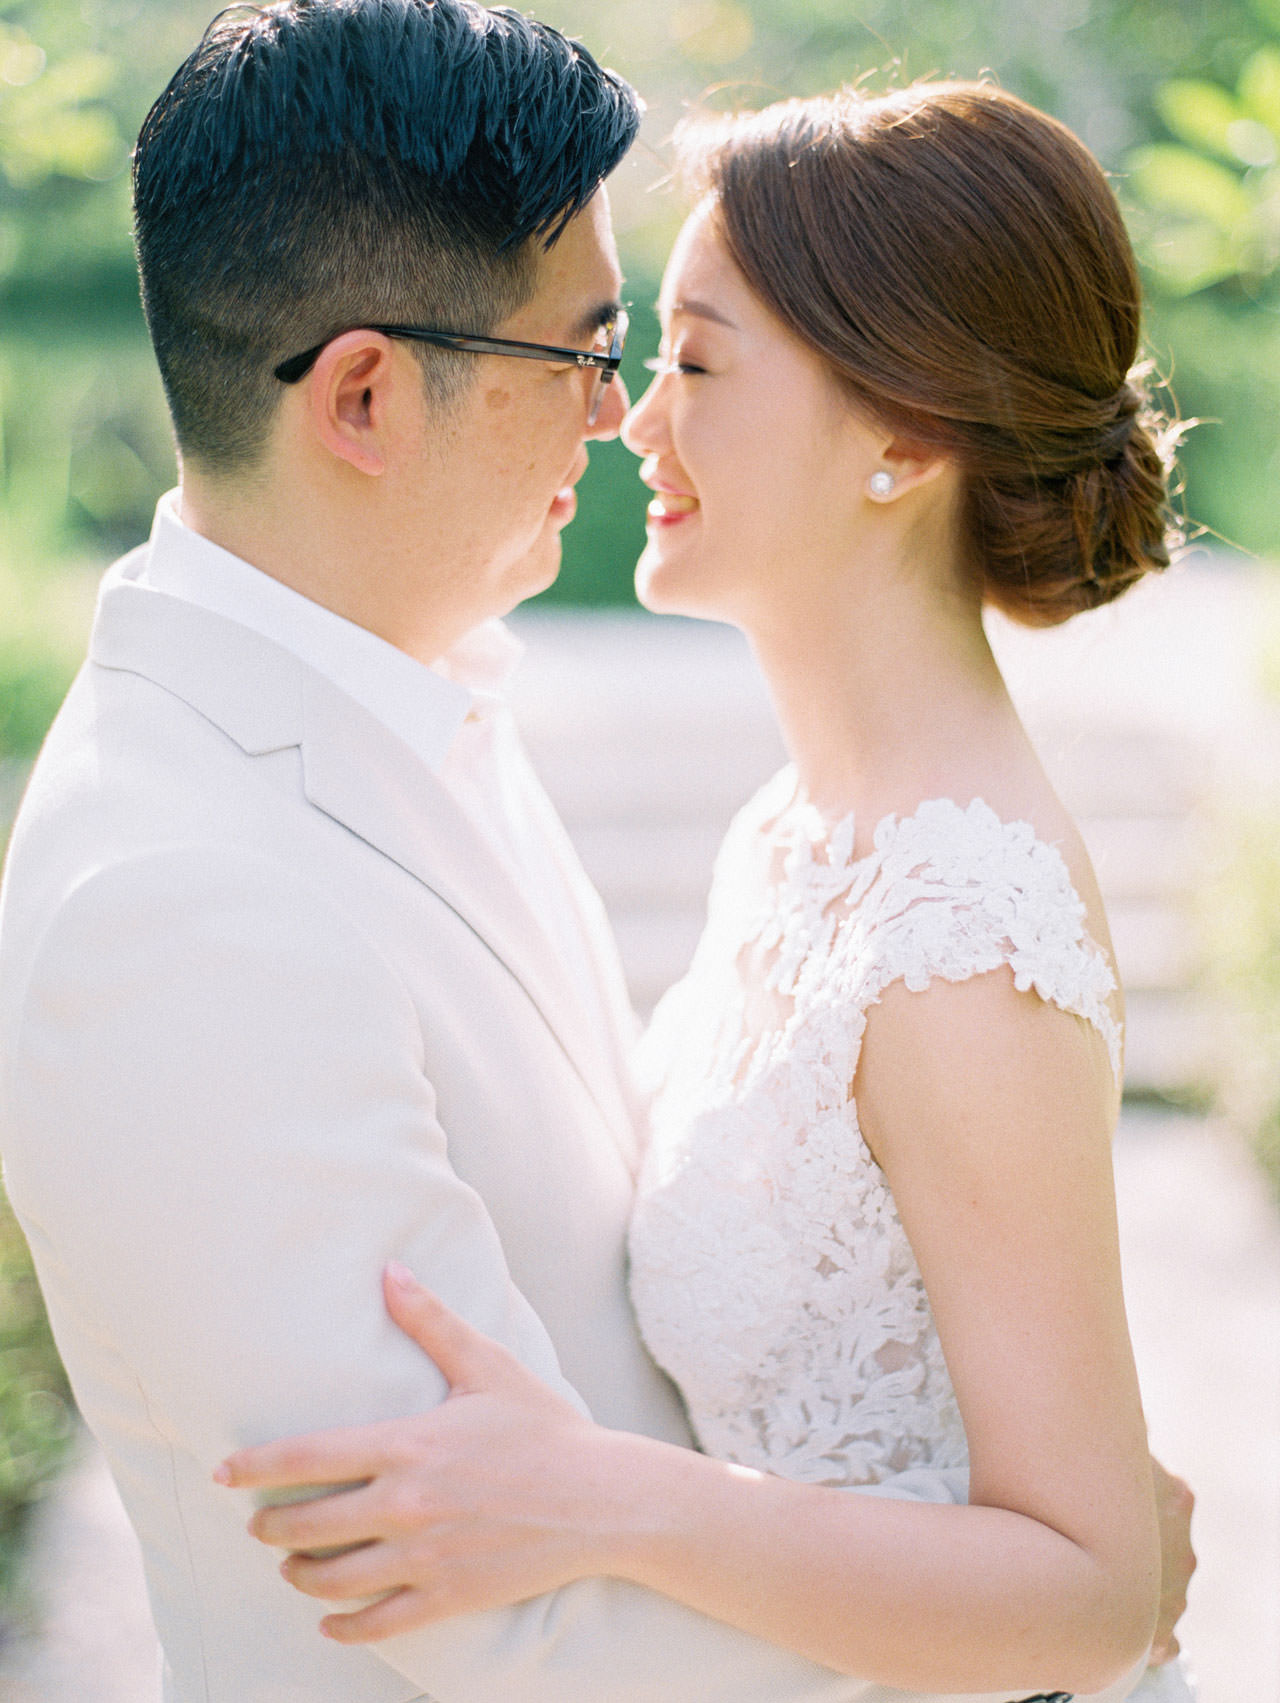 J&K: The Ritz Carlton Bali Beach Prewedding 2